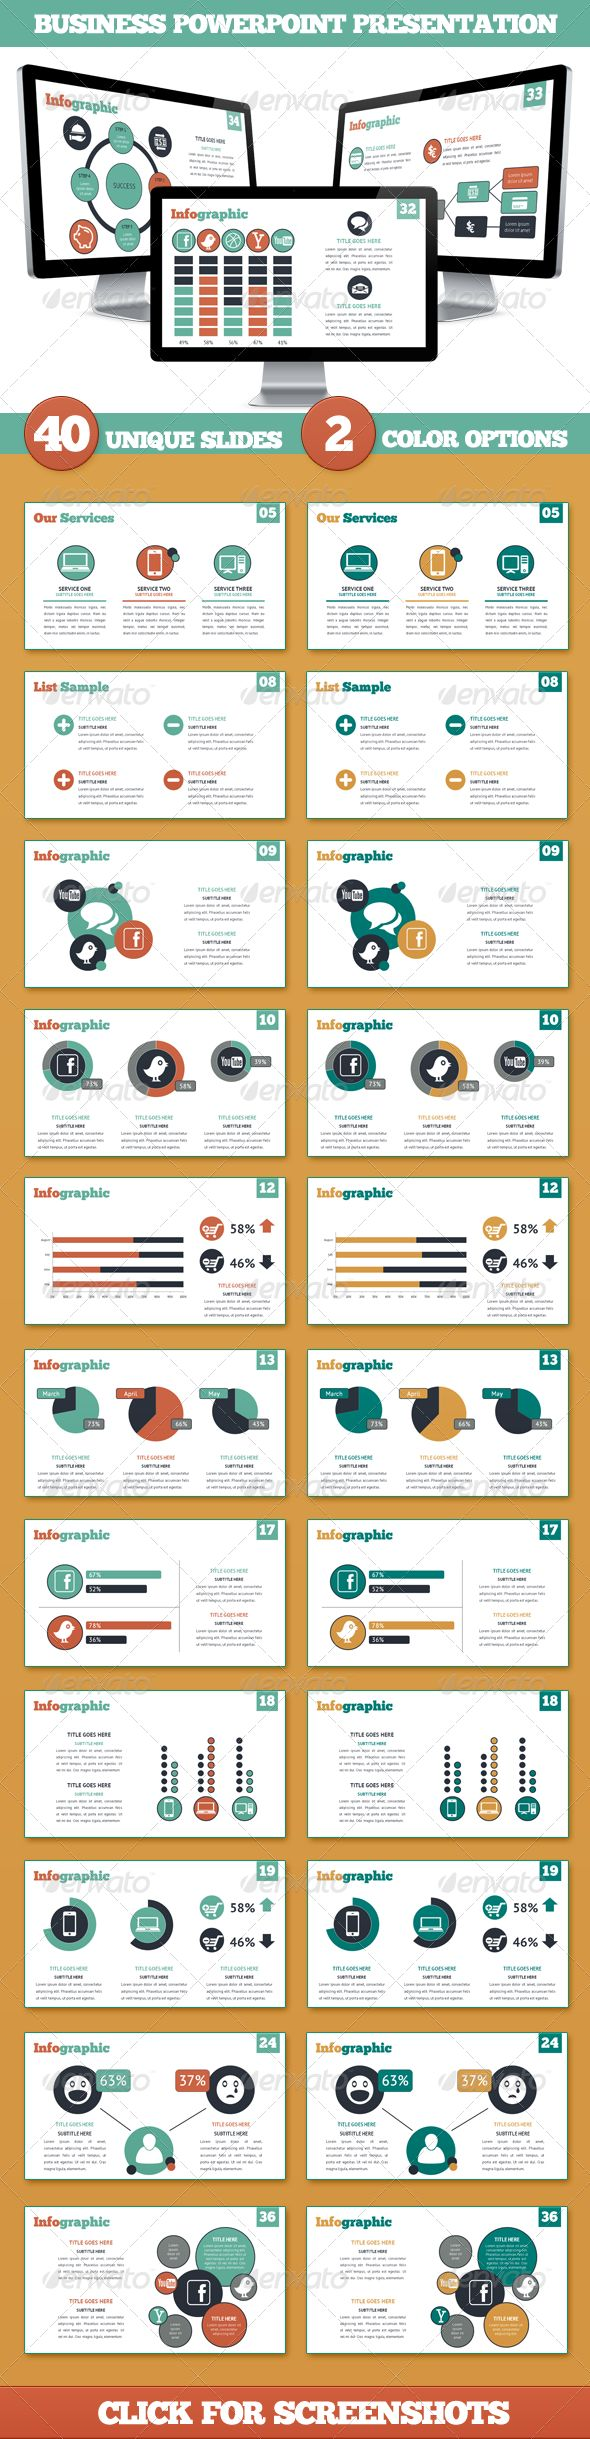 Business Powerpoint Presentation  #GraphicRiver              FILES